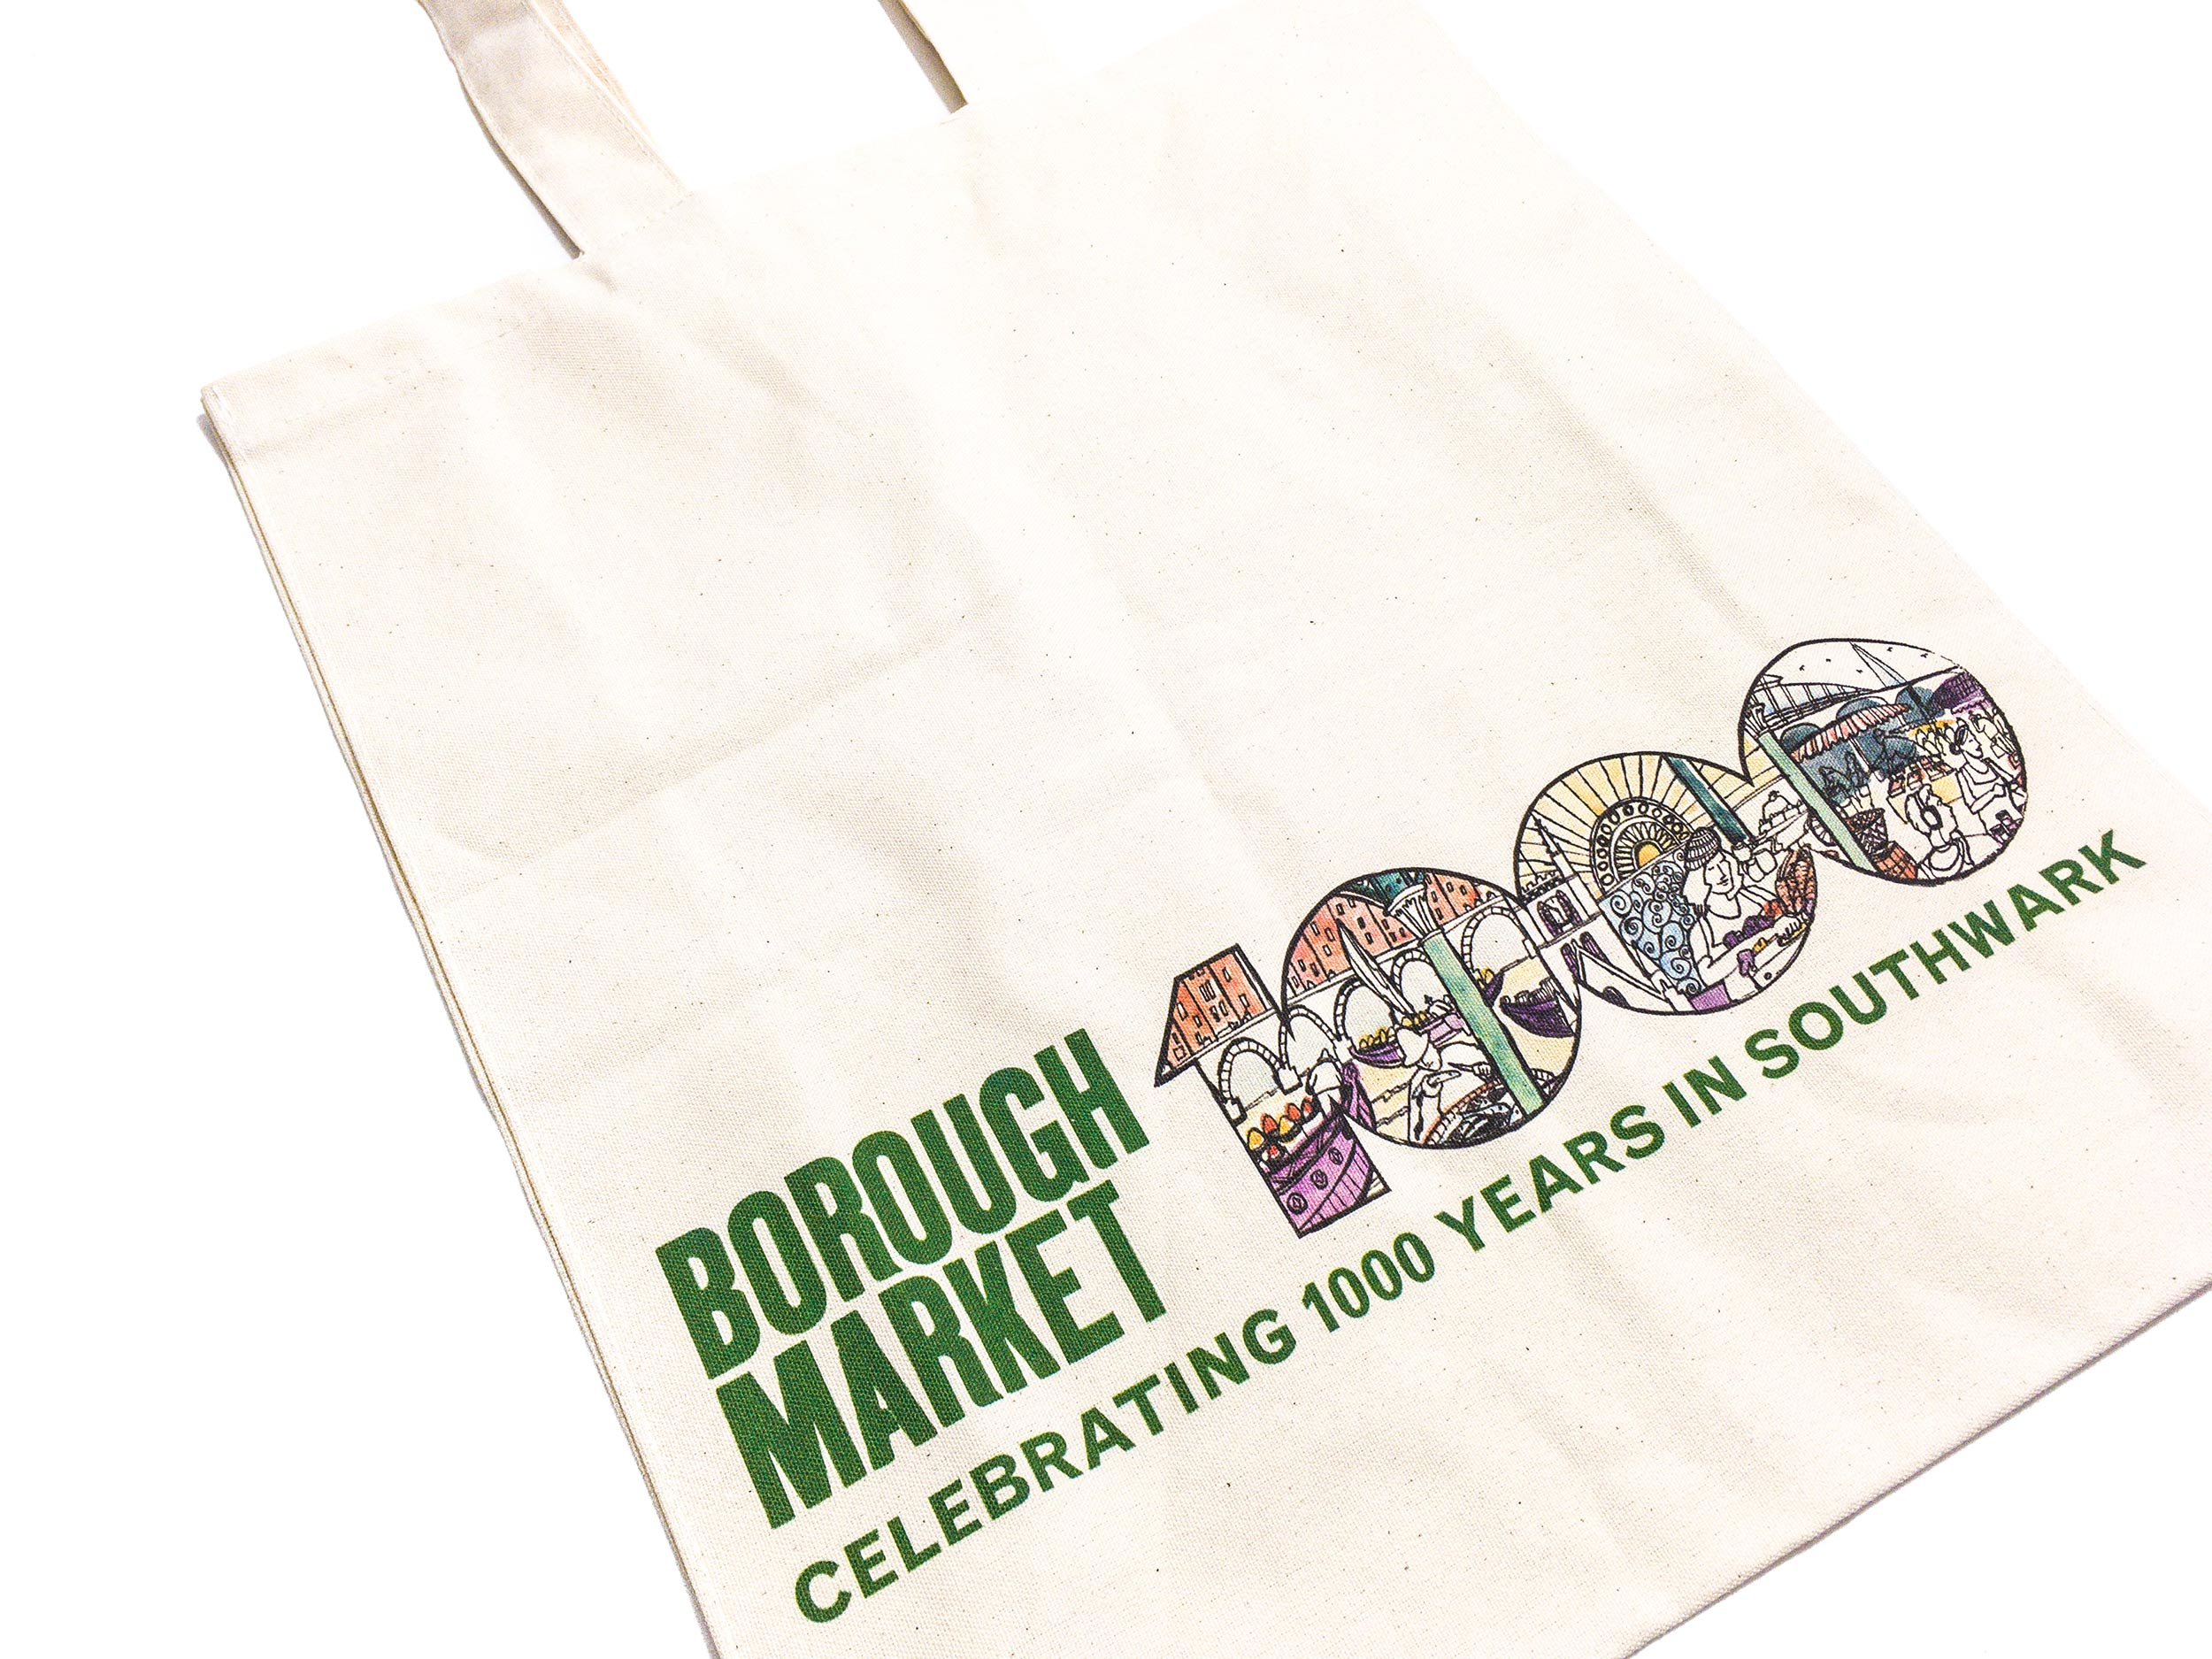 Borough Market at 1000 canvas bag by James Oses, image 2